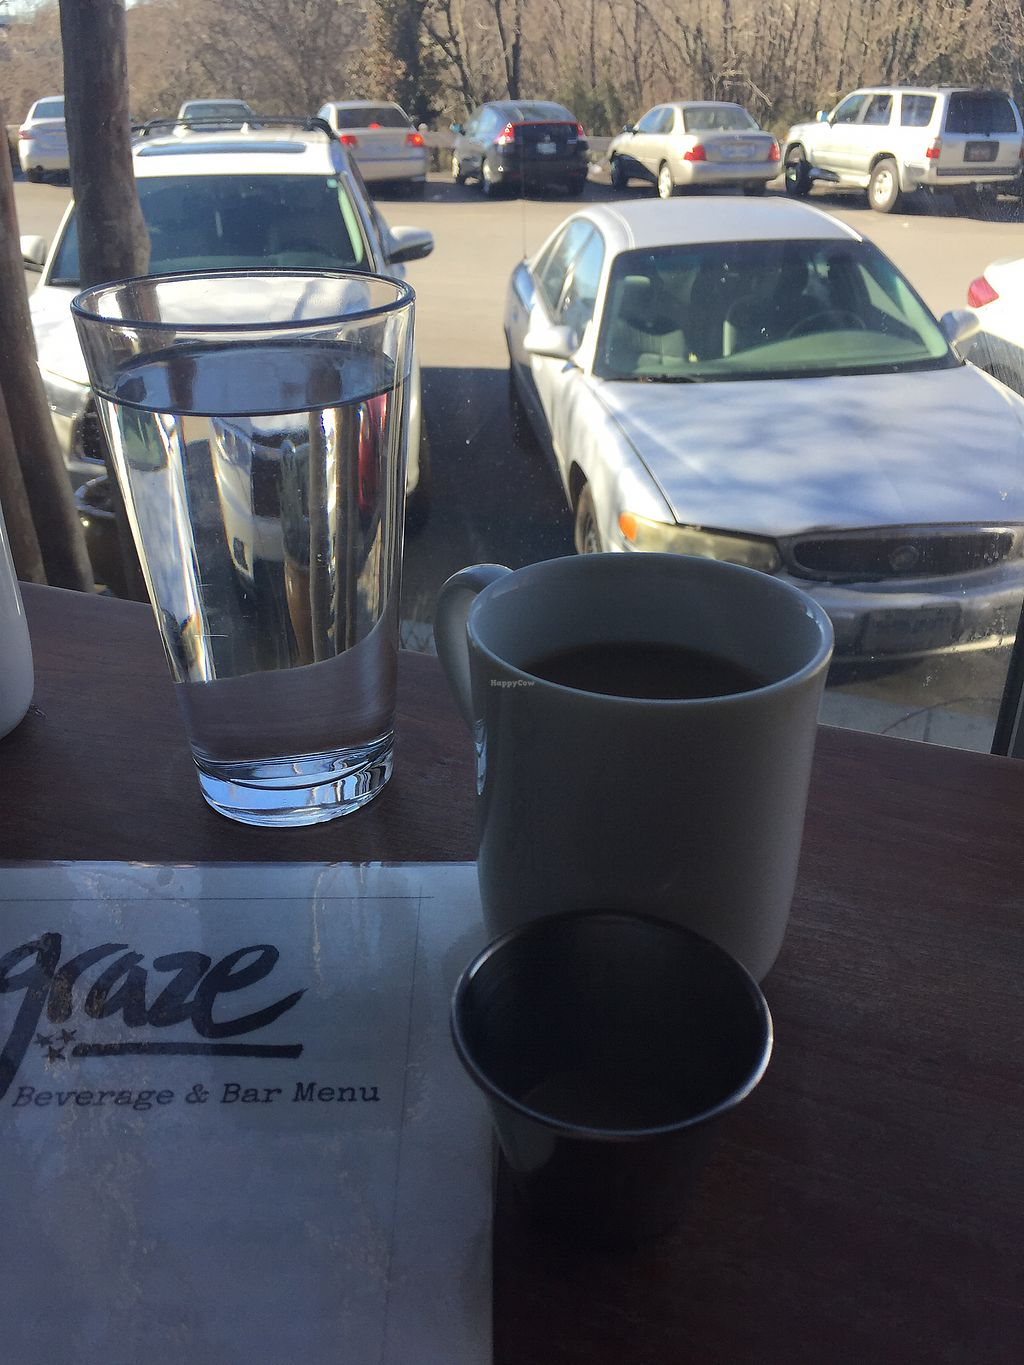 """Photo of Graze  by <a href=""""/members/profile/SaraGraceParks"""">SaraGraceParks</a> <br/>love coming here for brunch <br/> December 10, 2017  - <a href='/contact/abuse/image/73189/334377'>Report</a>"""